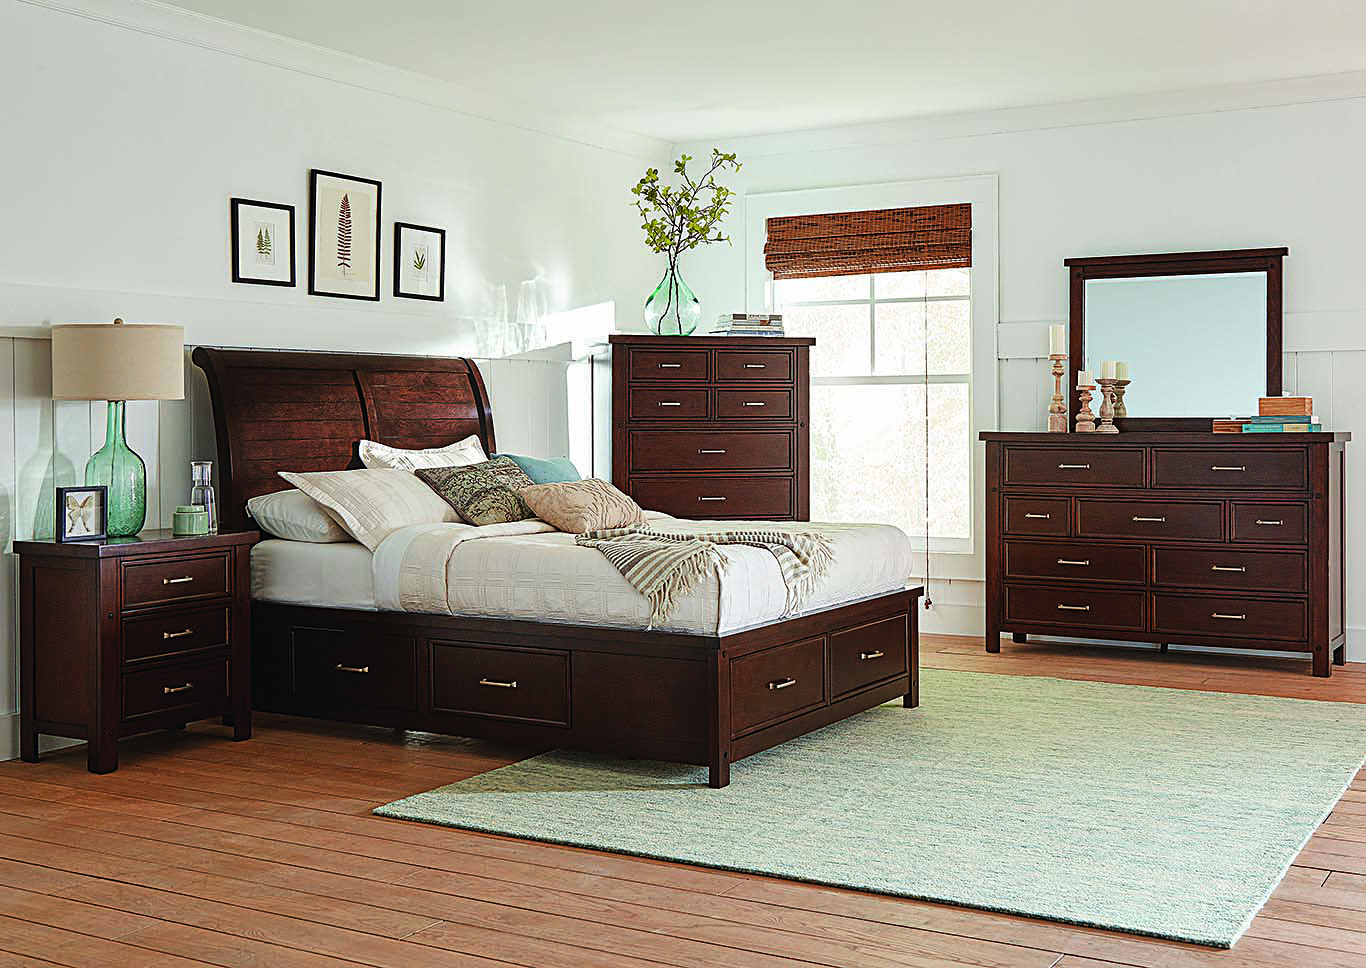 Bedding Storage Sweet Dreamzzz Bedding Furniture Barstow Pinot Noir Eastern King